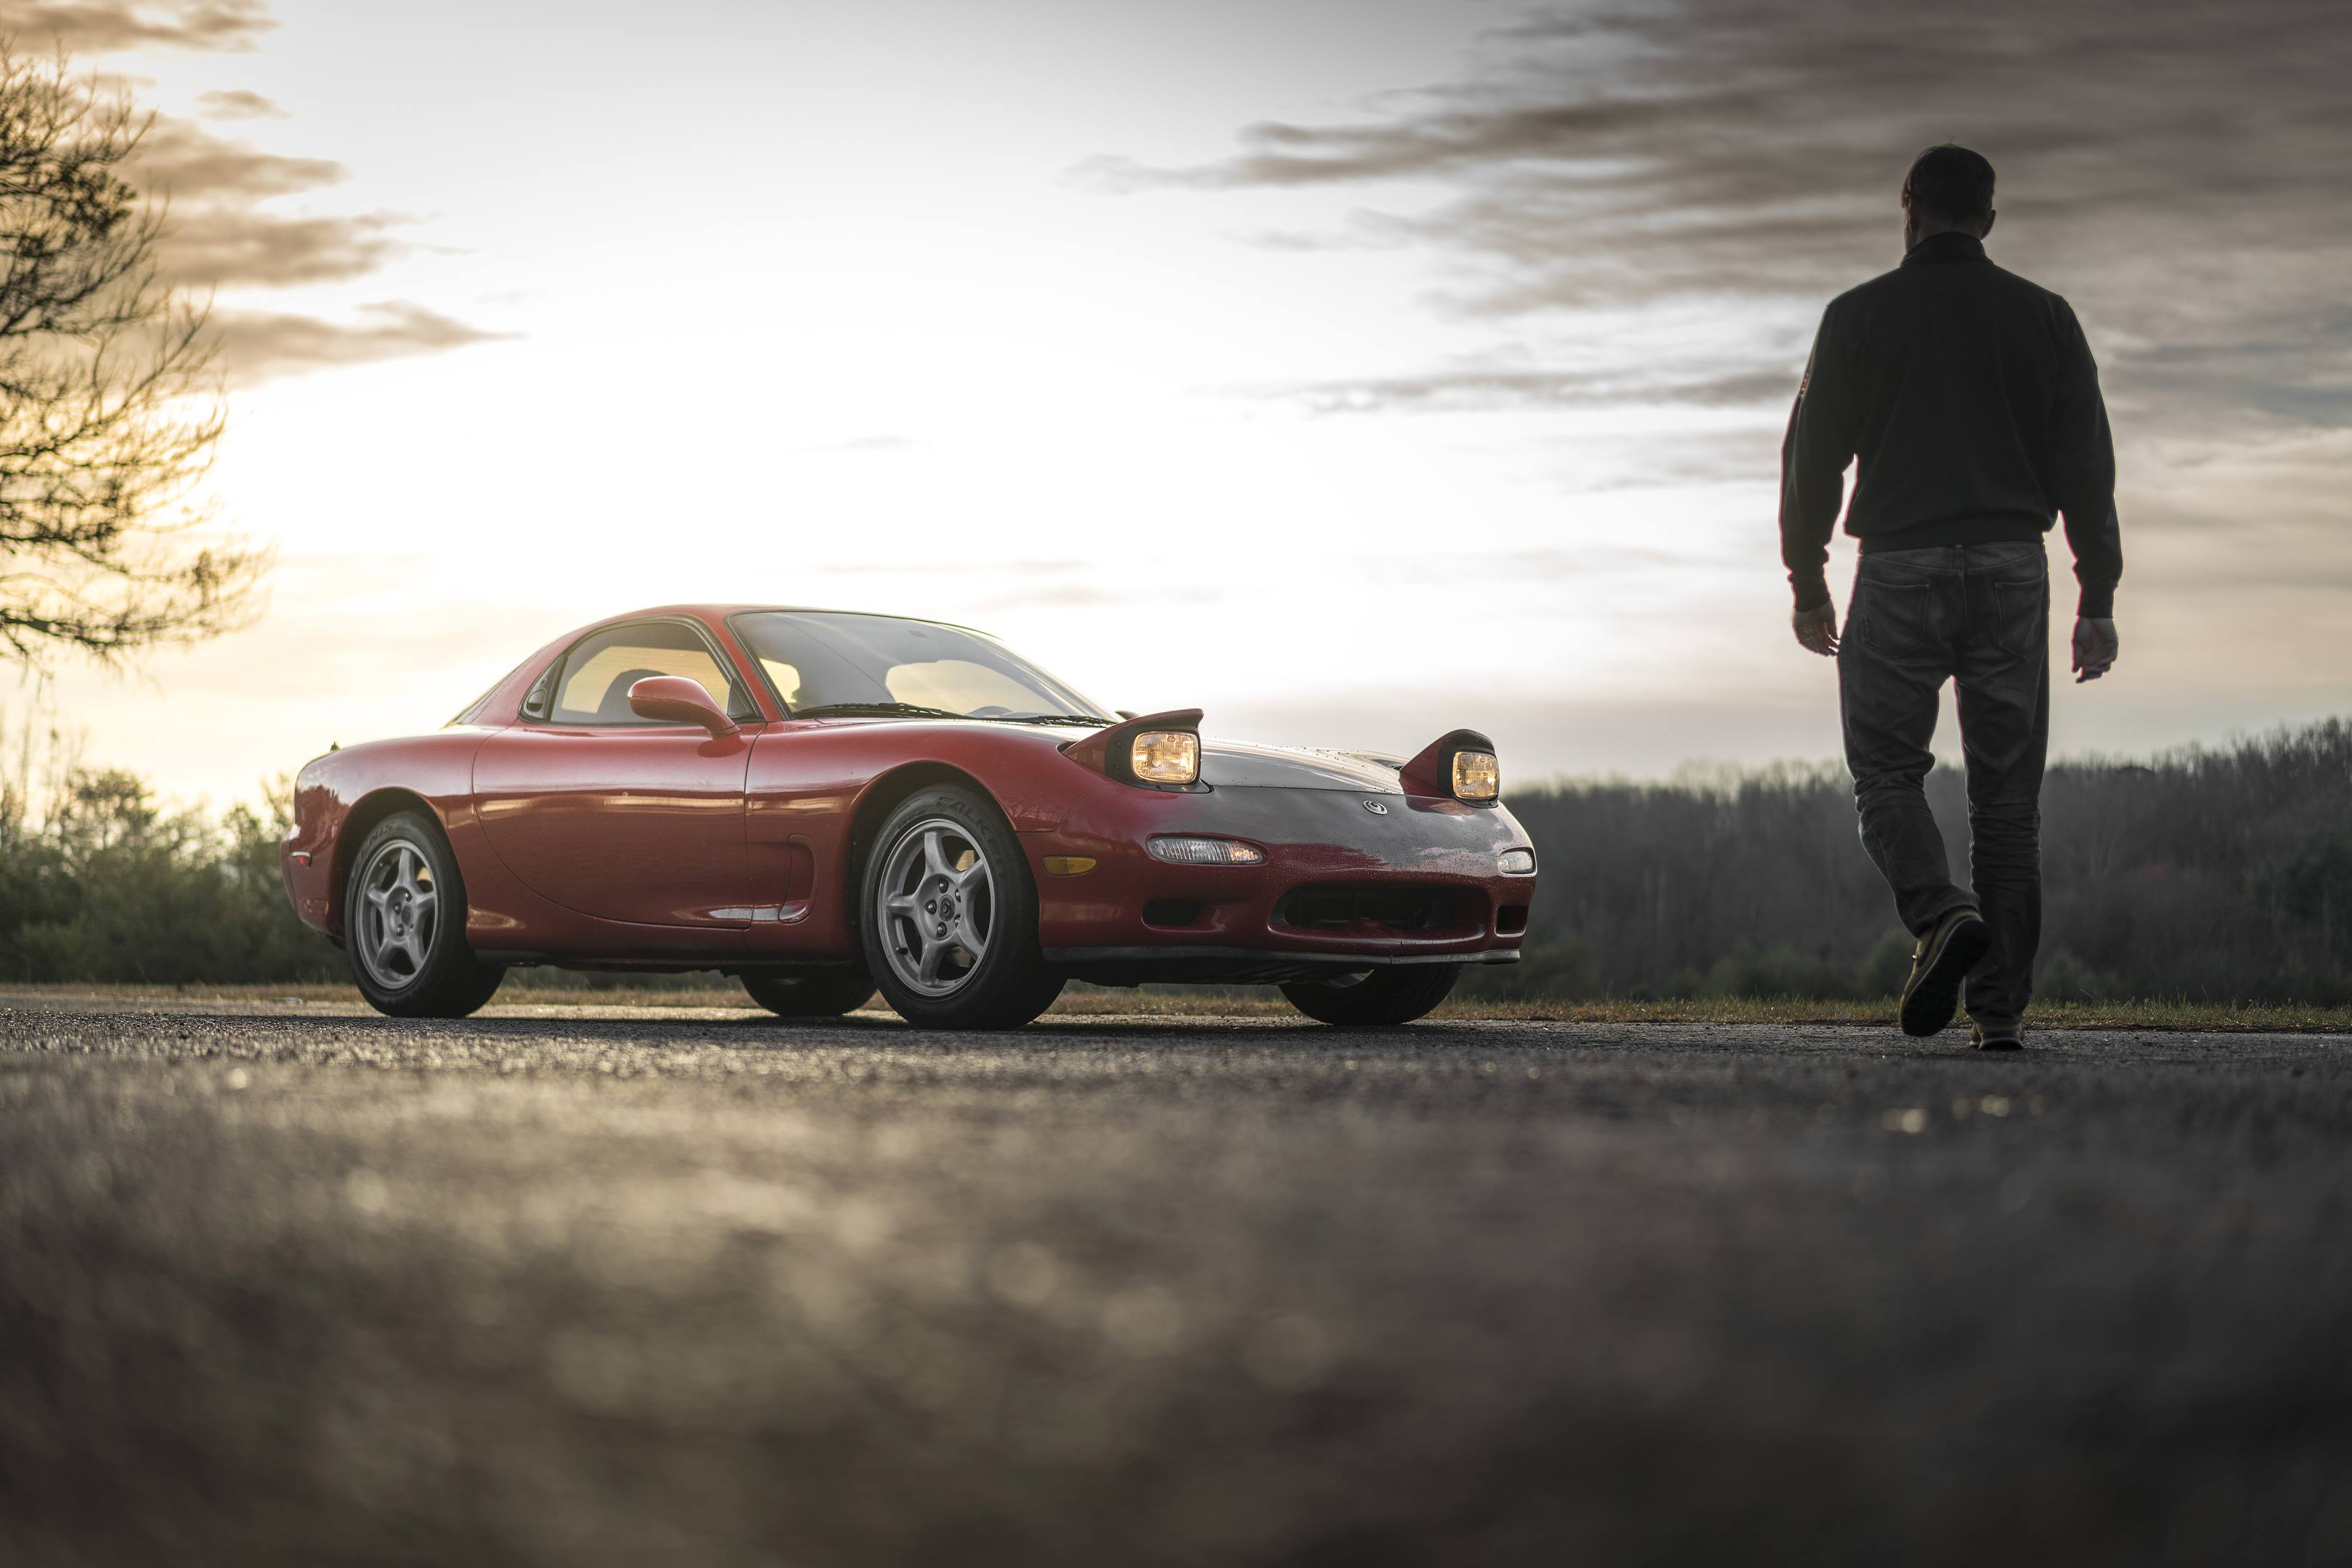 Larry Webster walking towards his 1993 Mazda RX-7 purchase